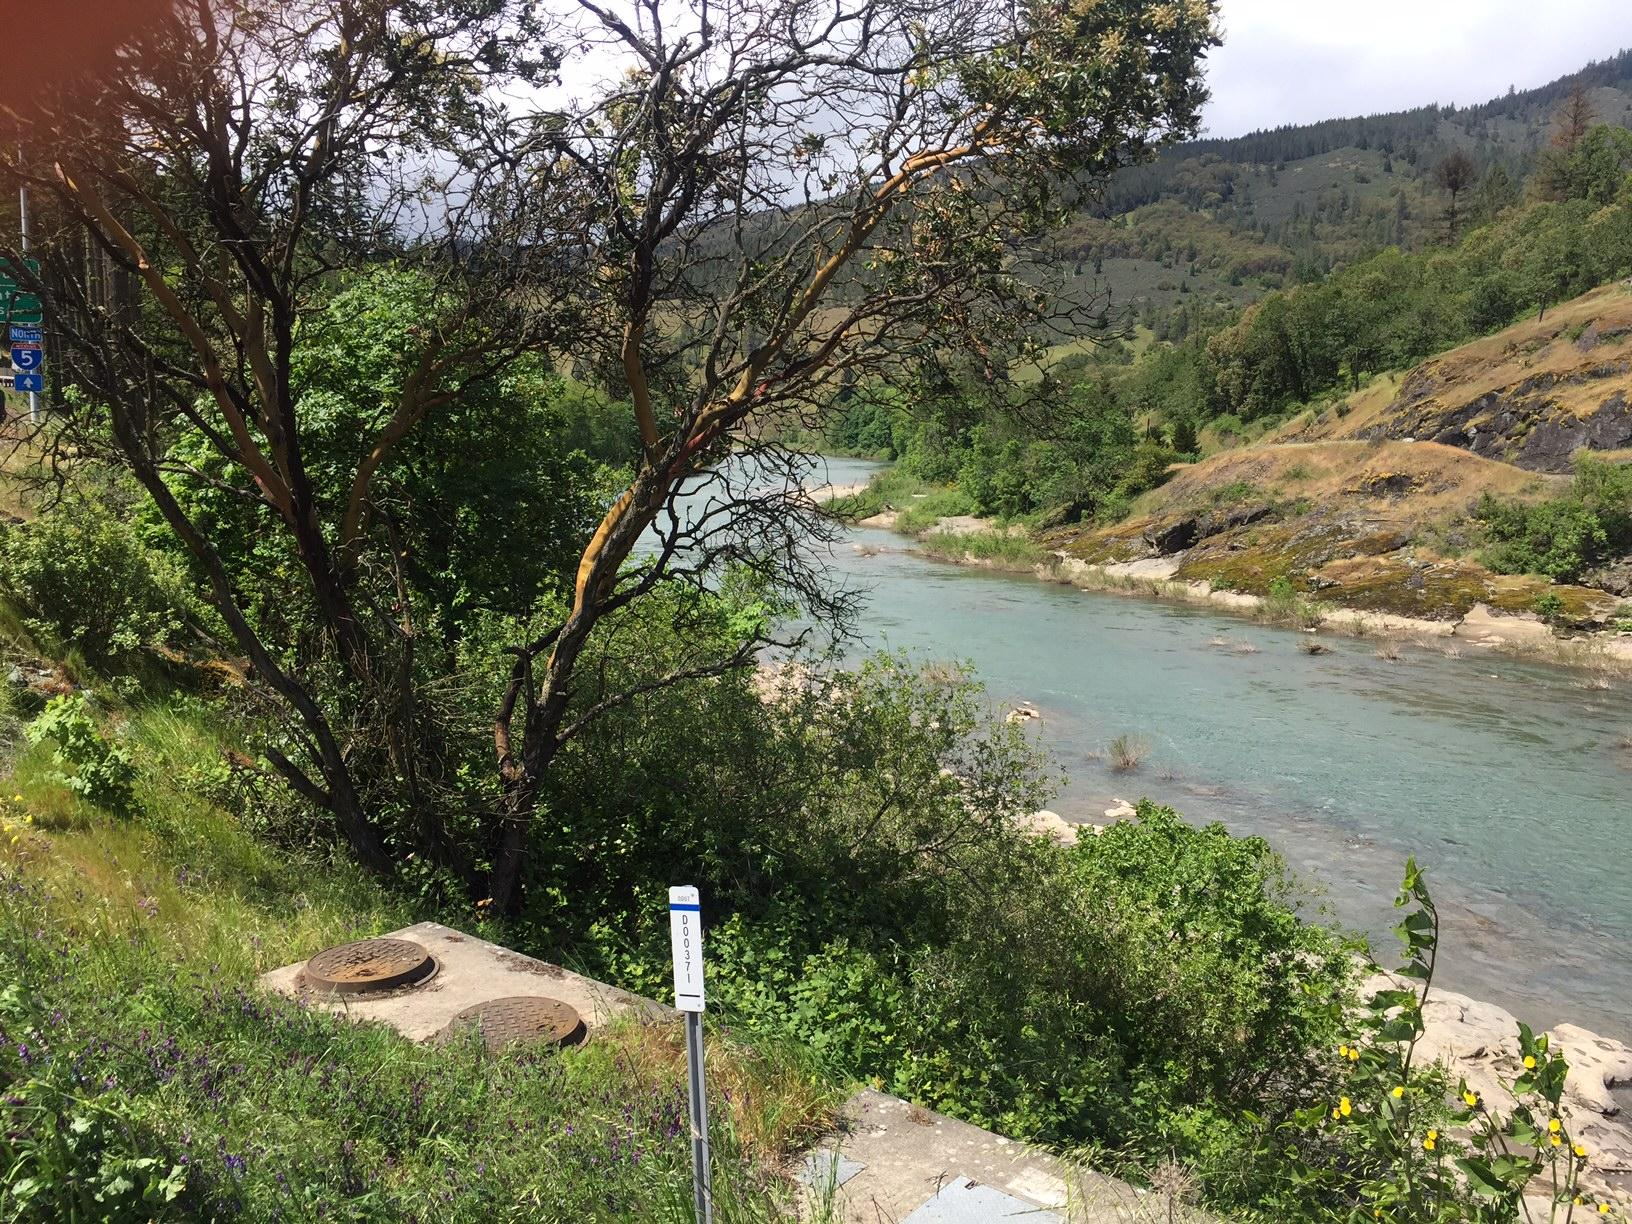 The body found along the South Umpqua River on Monday has tentatively been identified, the Douglas County Sheriff's Office said.  The man died within the last 6 months, according to the Douglas County Medical Examiner. (SBG)